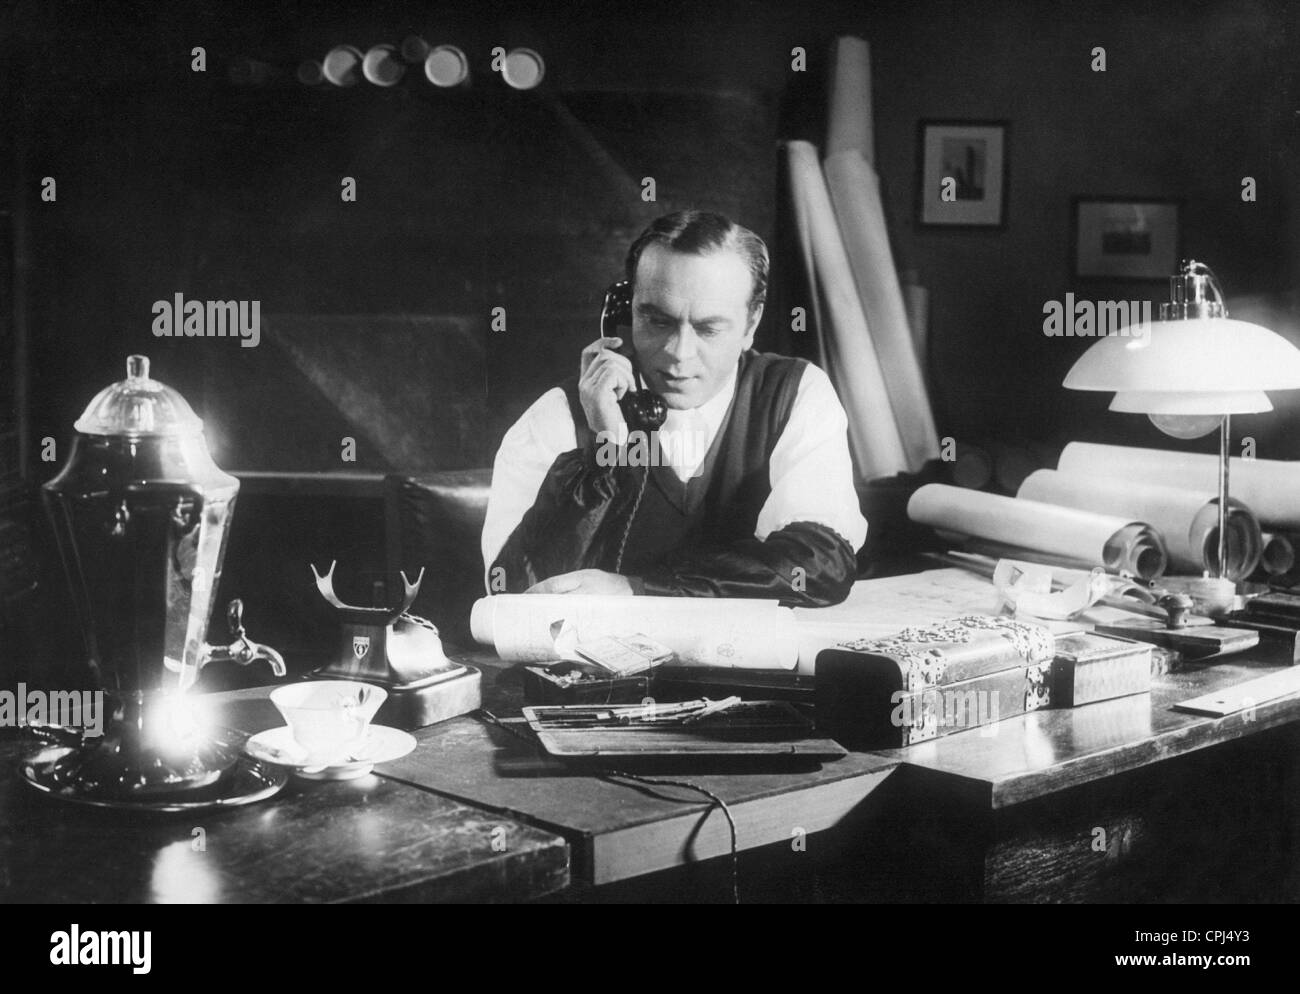 Paul Hartmann in 'F. P.1 Doesn't Answer', 1932 - Stock Image